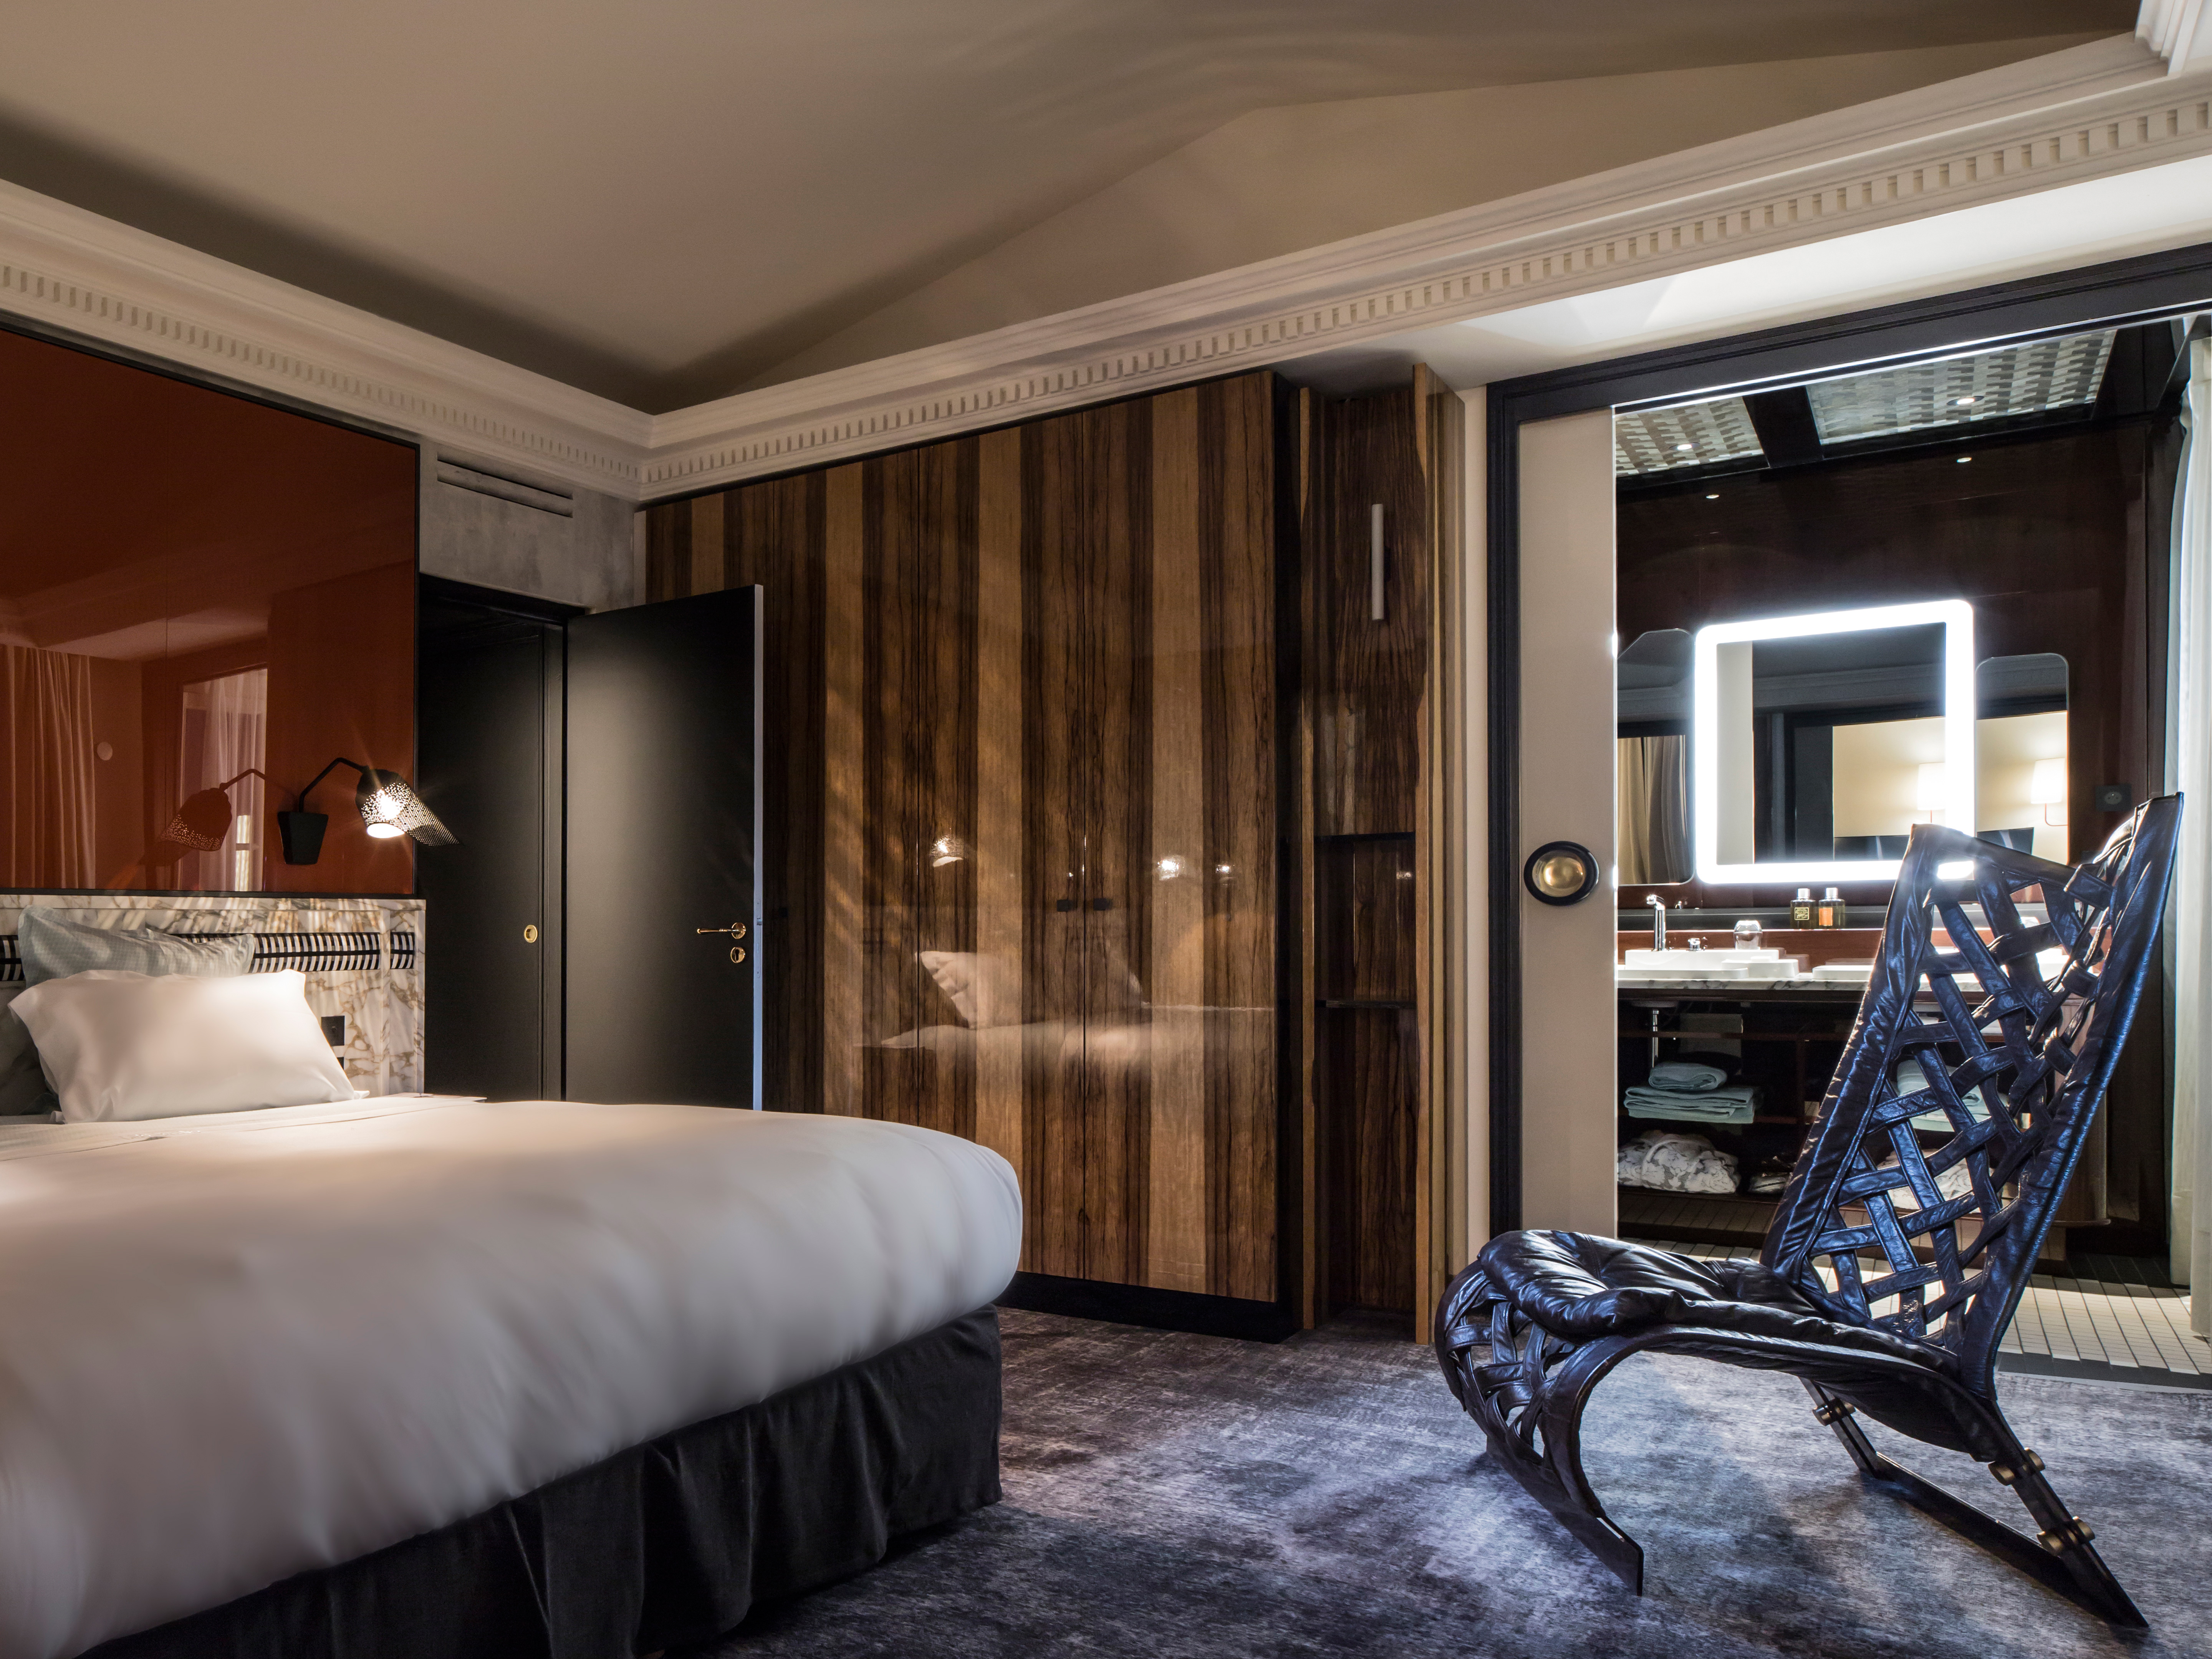 rooms suites at les bains in paris france design hotels. Black Bedroom Furniture Sets. Home Design Ideas